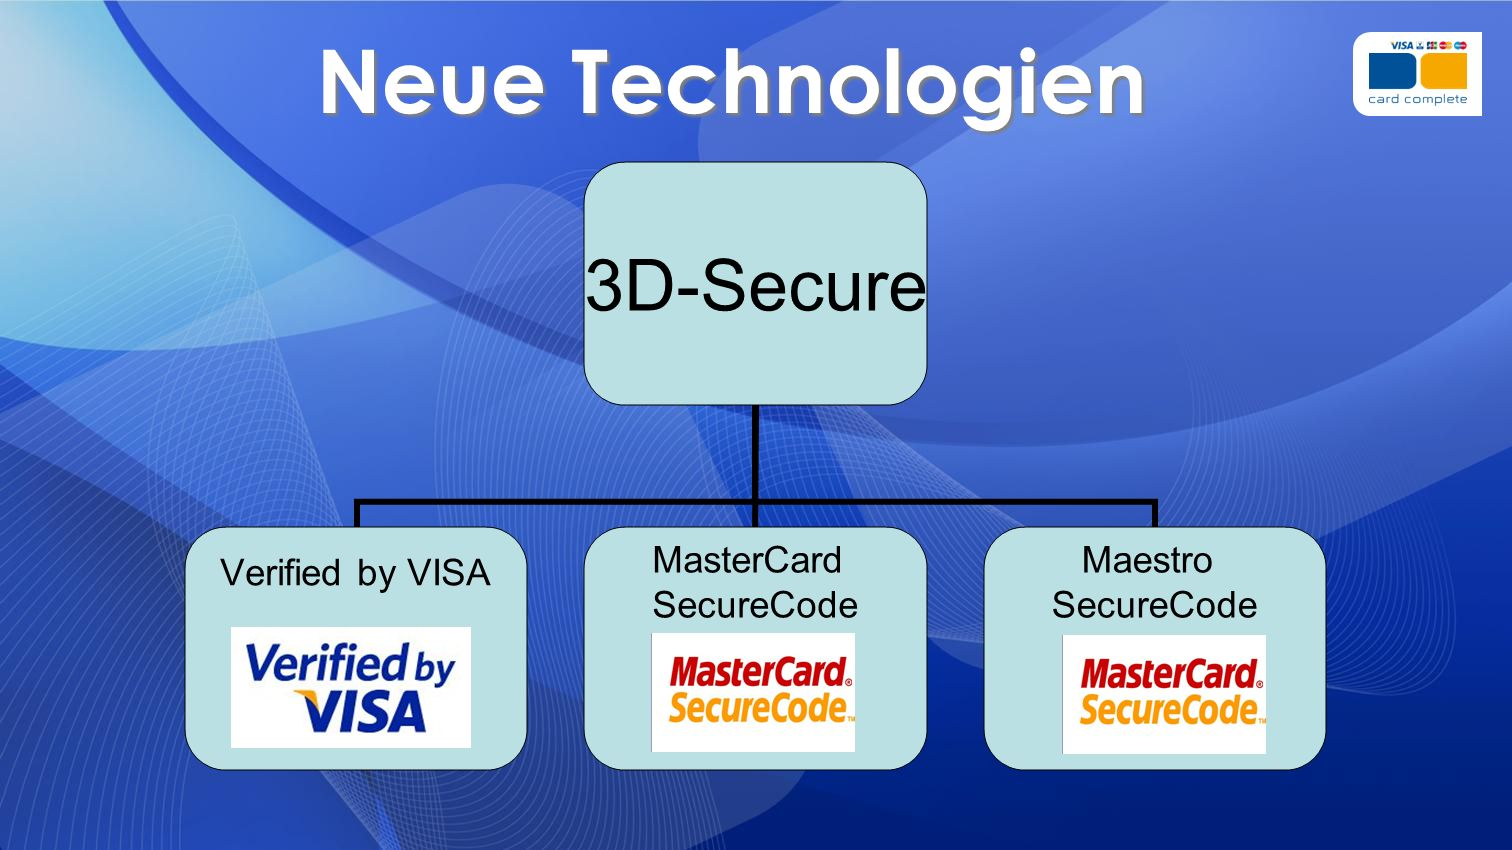 Neue Technologien 3D-Secure Verified by VISAMasterCard SecureCode Maestro SecureCode